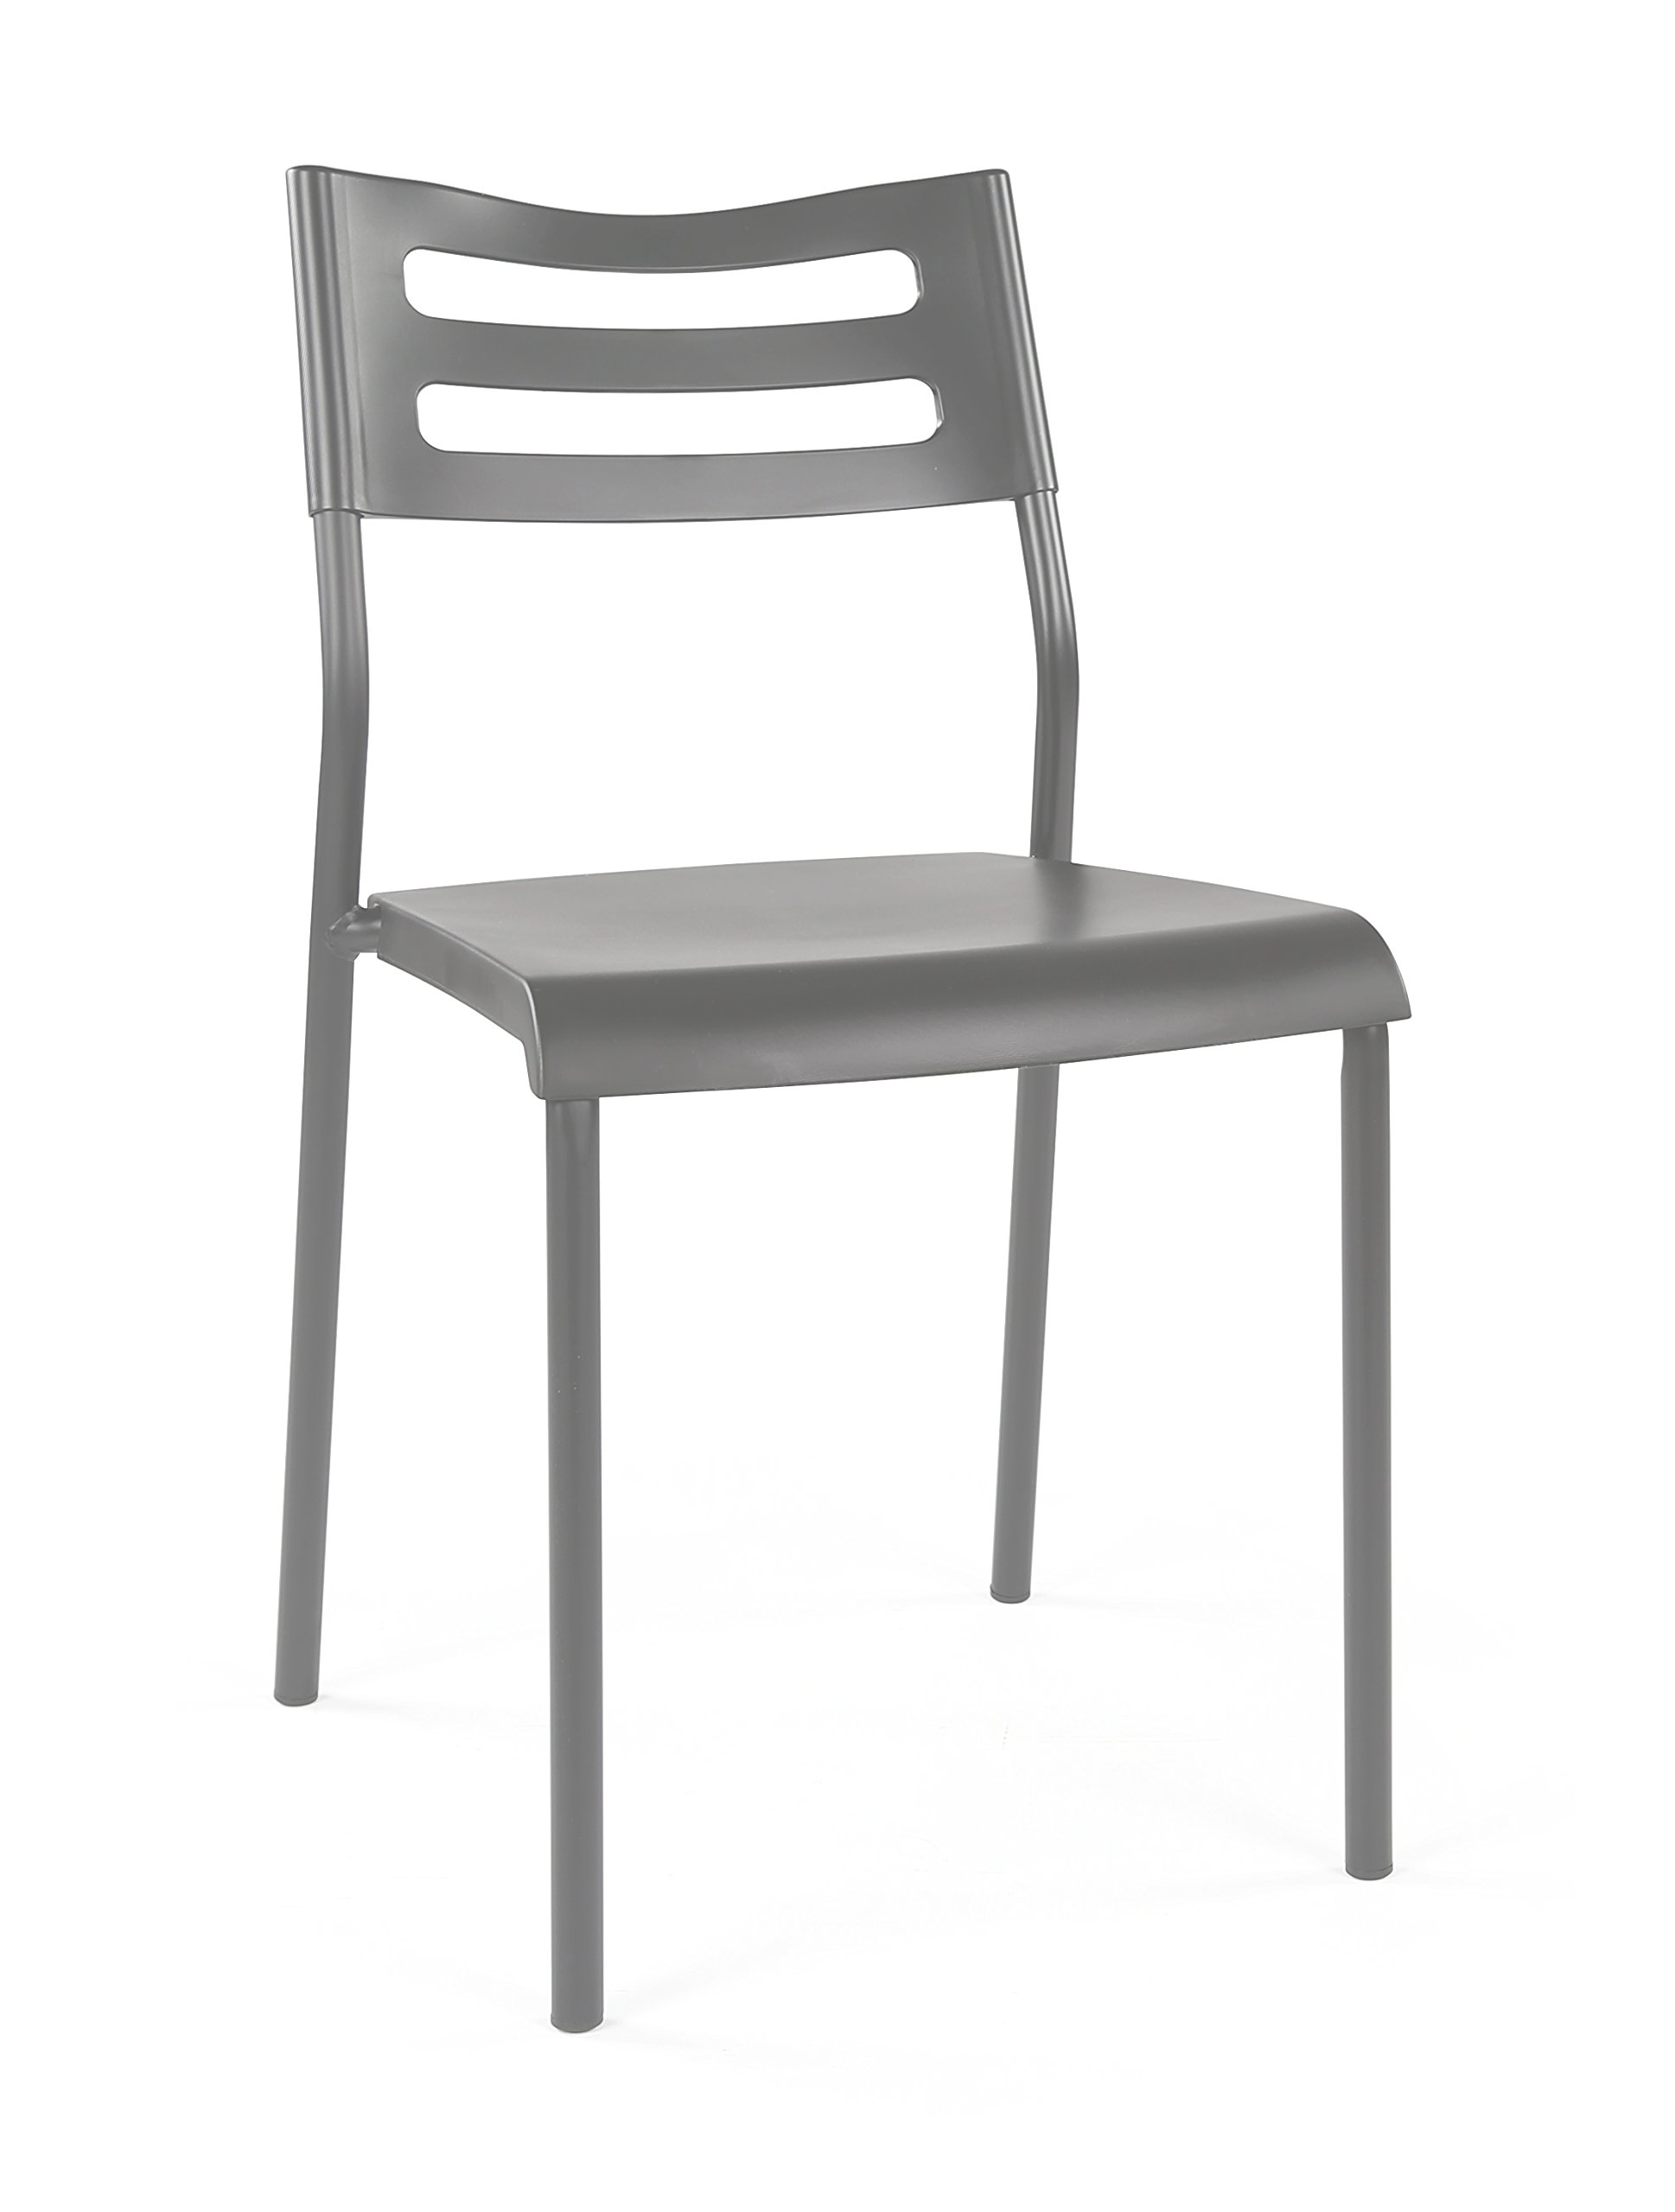 Humble Crew LT961 Chair for Desks and Kitchen Dining Tables, Grey